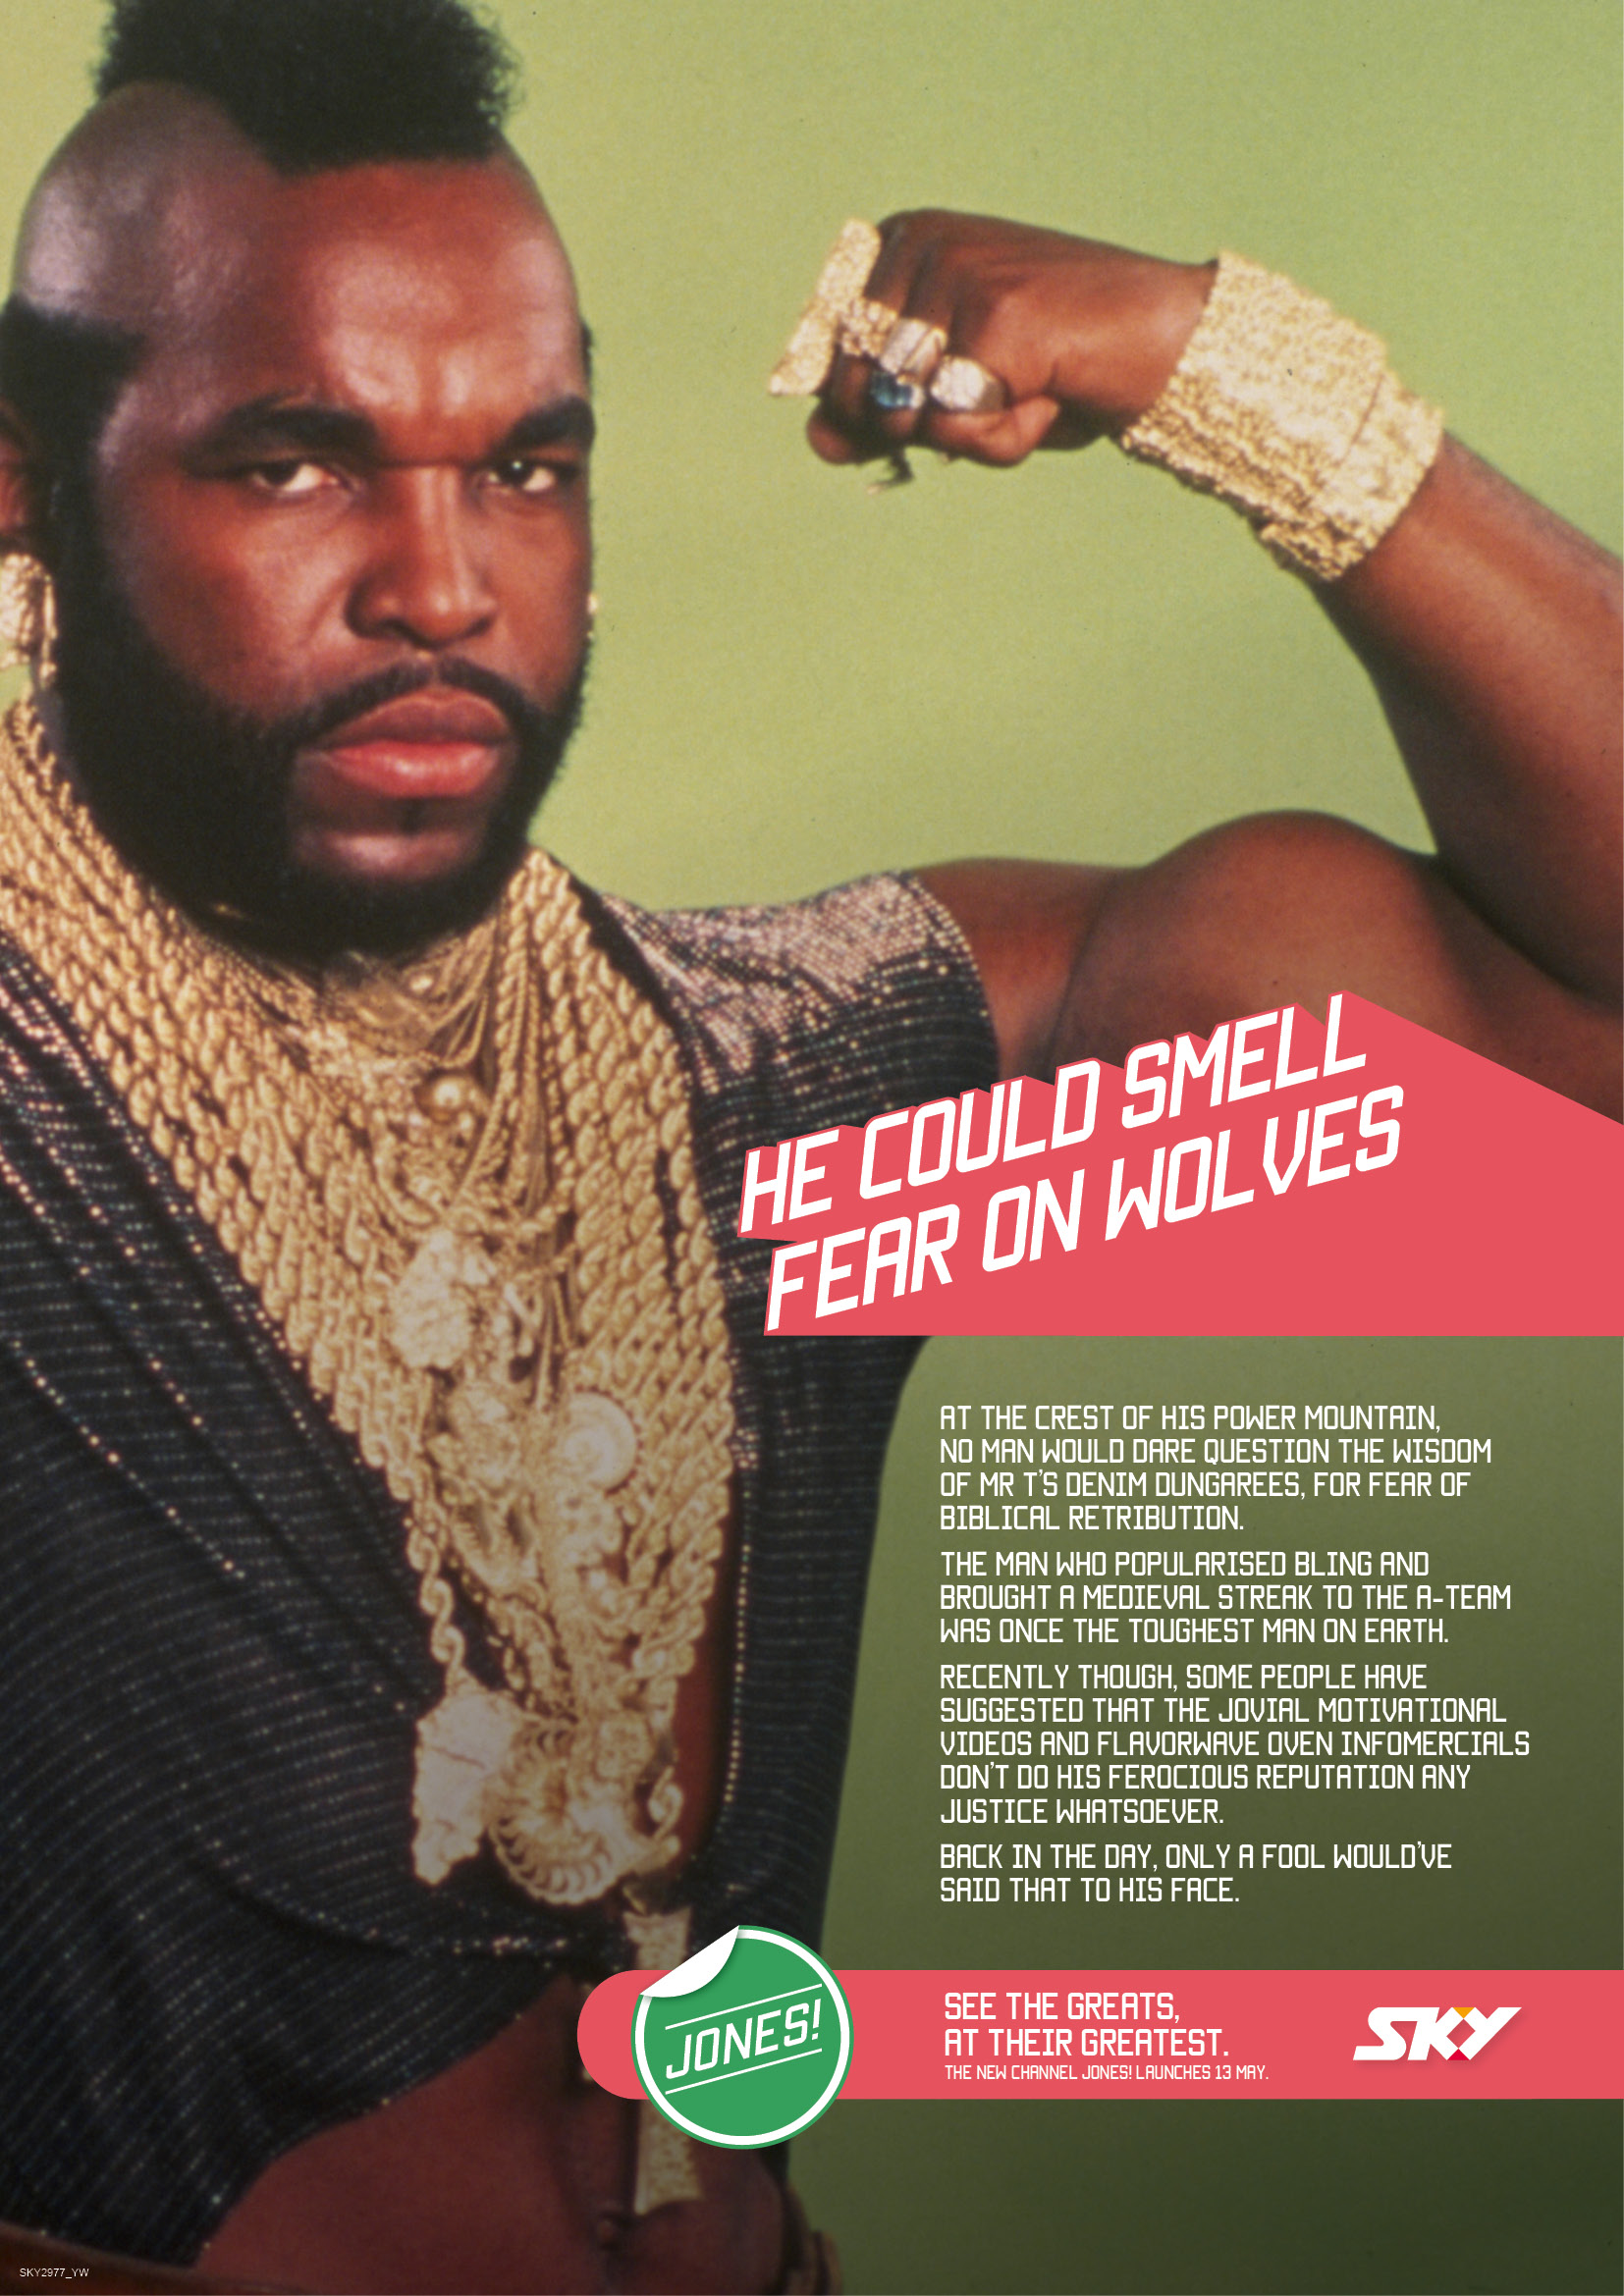 Print Ad Sky Jones Channel Mr T